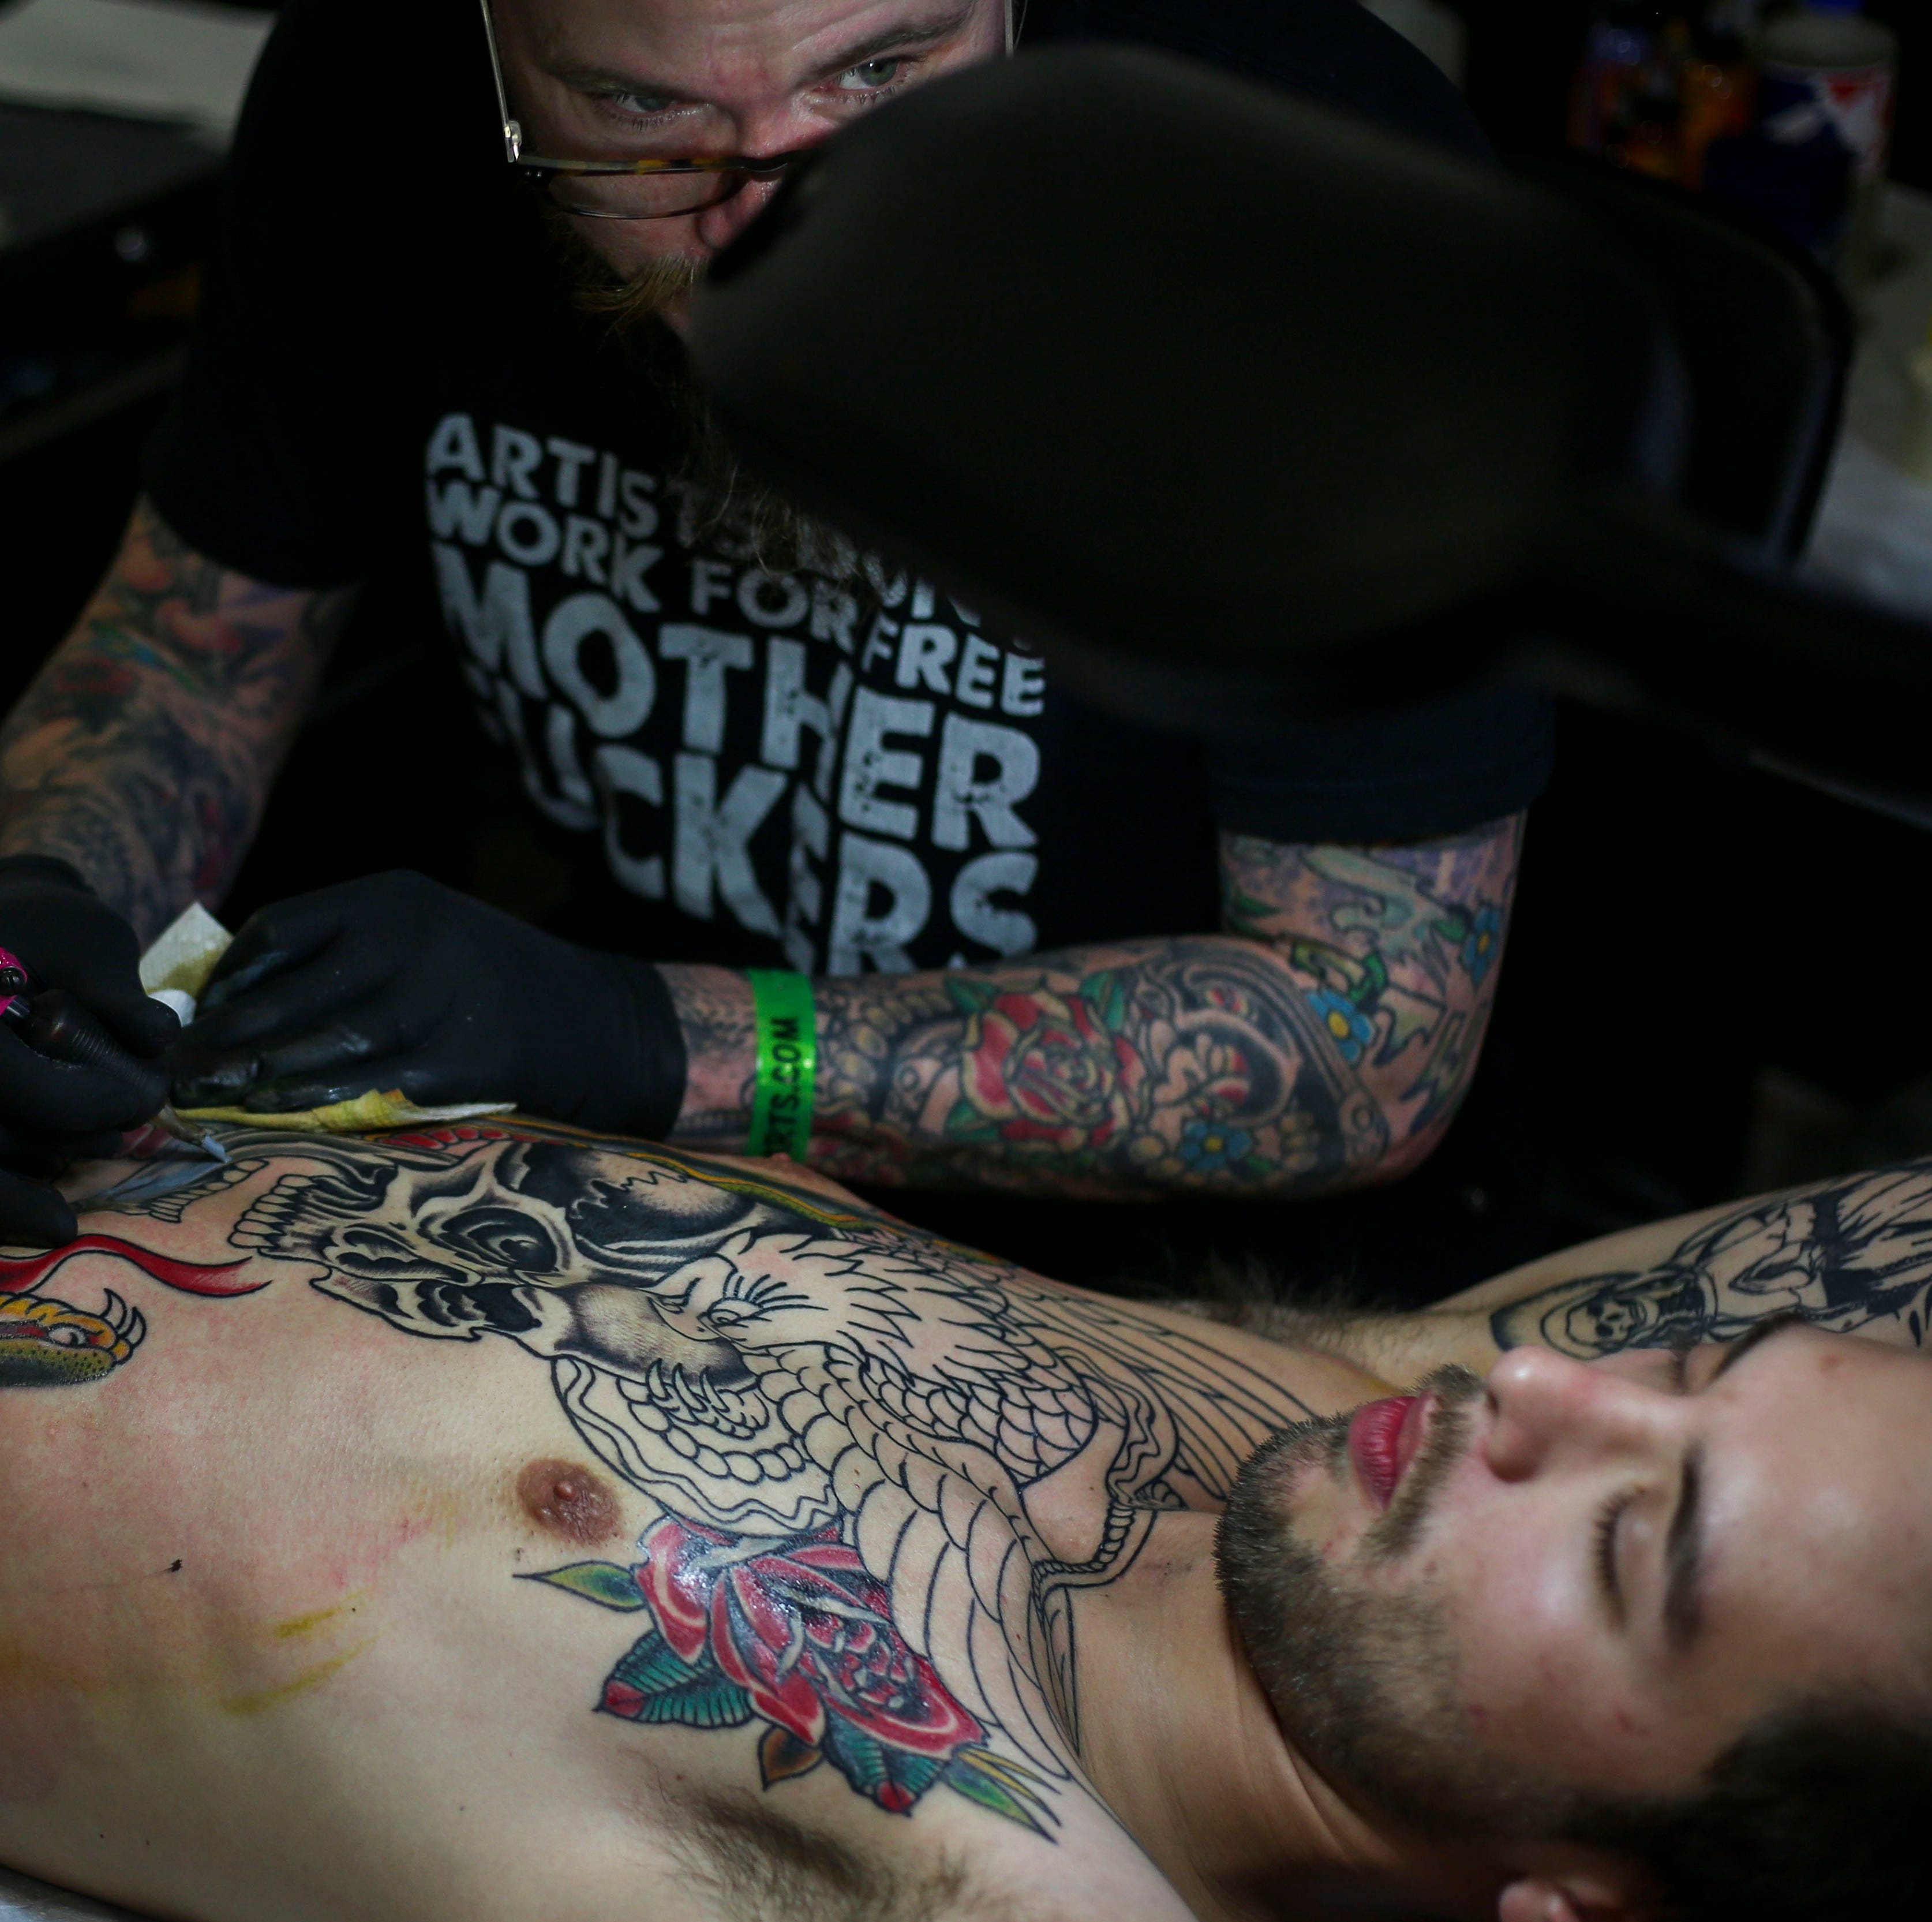 Kentucky is considering banning tattoos over scars. But no one knows why